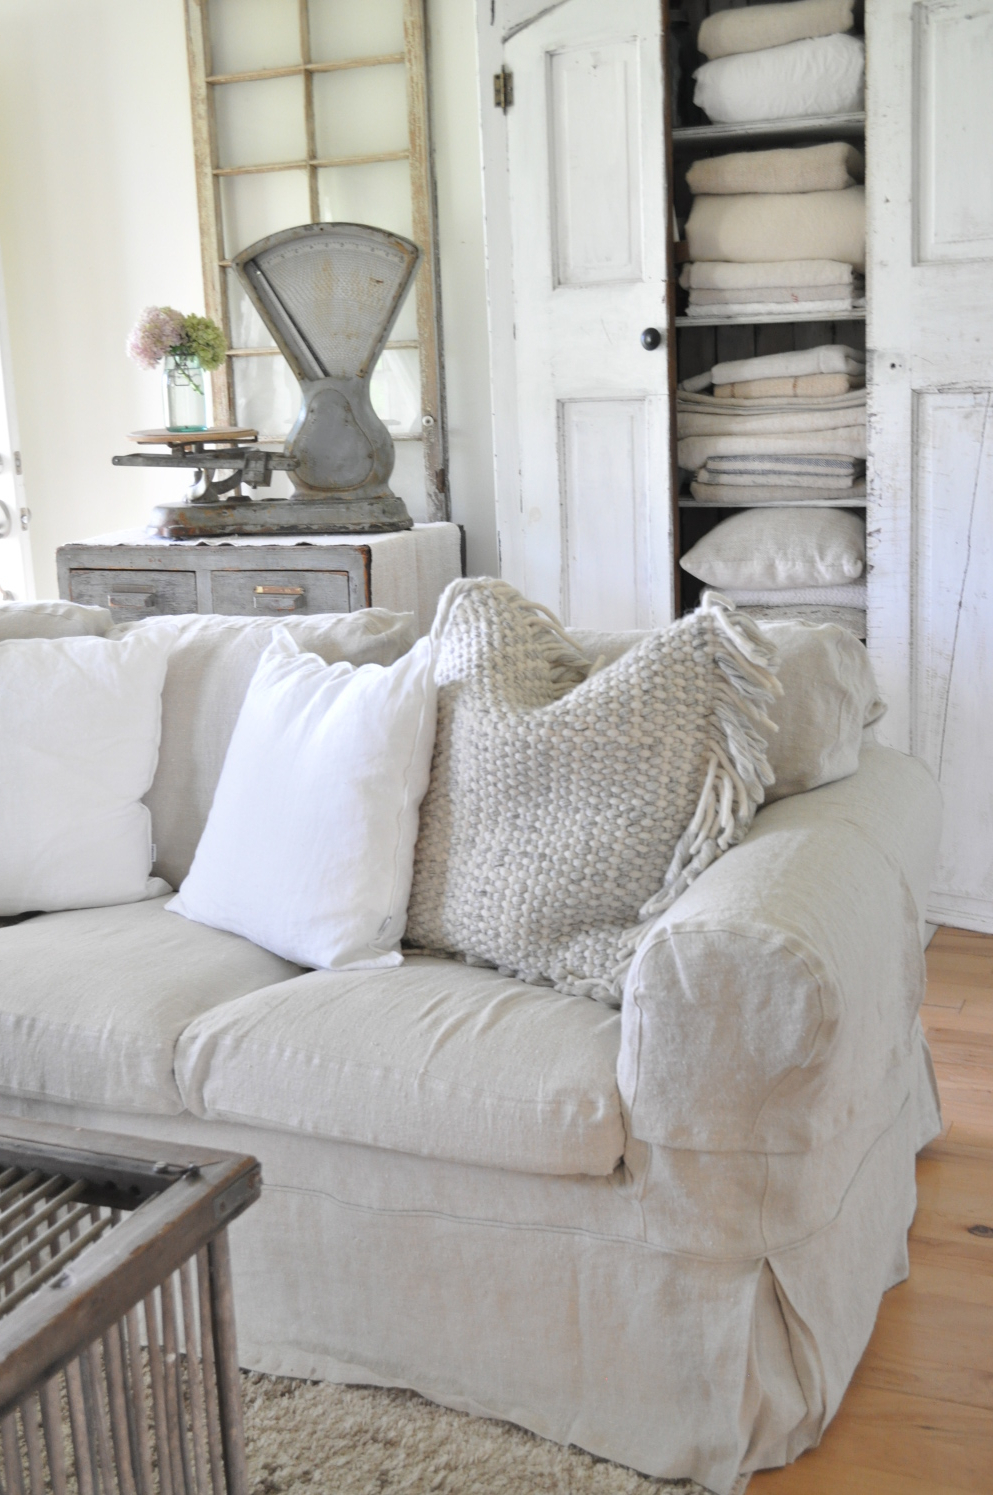 Slipcovers For Sofas And Chairs With Regard To Fashionable Sofa Slipcovers – Becky's Farmhouse (View 15 of 20)